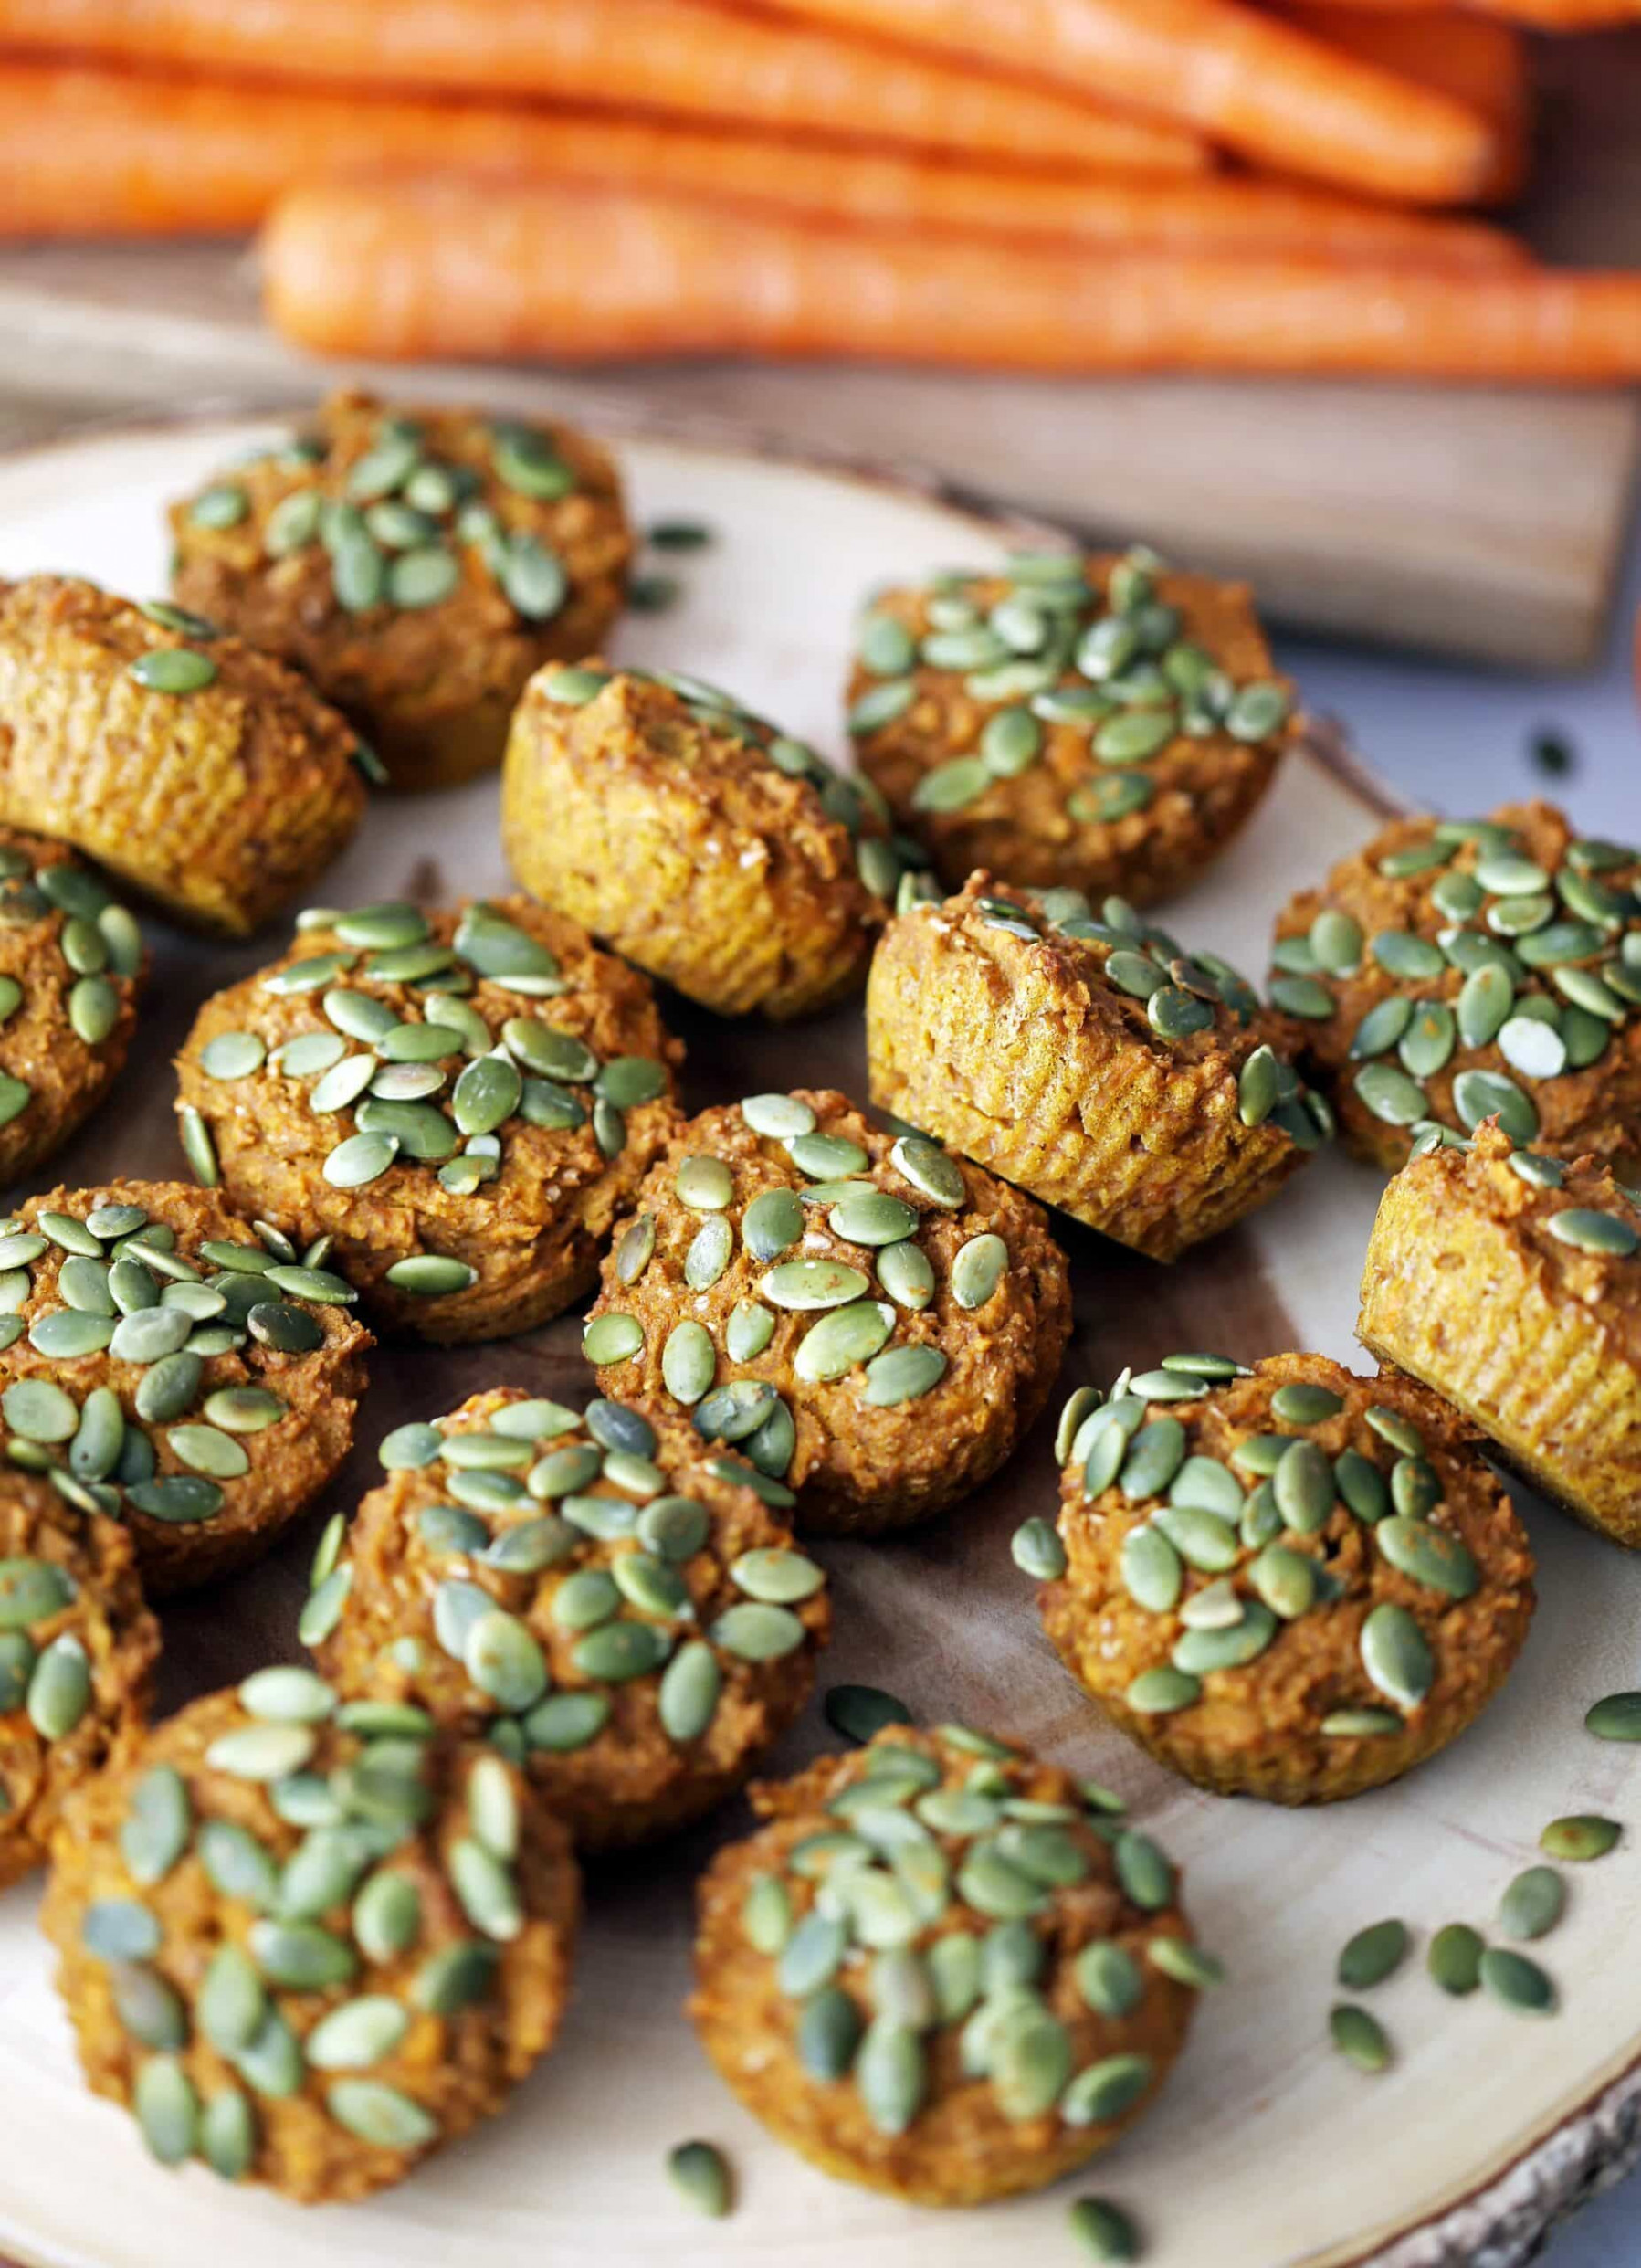 Healthy Carrot Pumpkin Muffins - Yay! For Food - recipes using pumpkin puree healthy